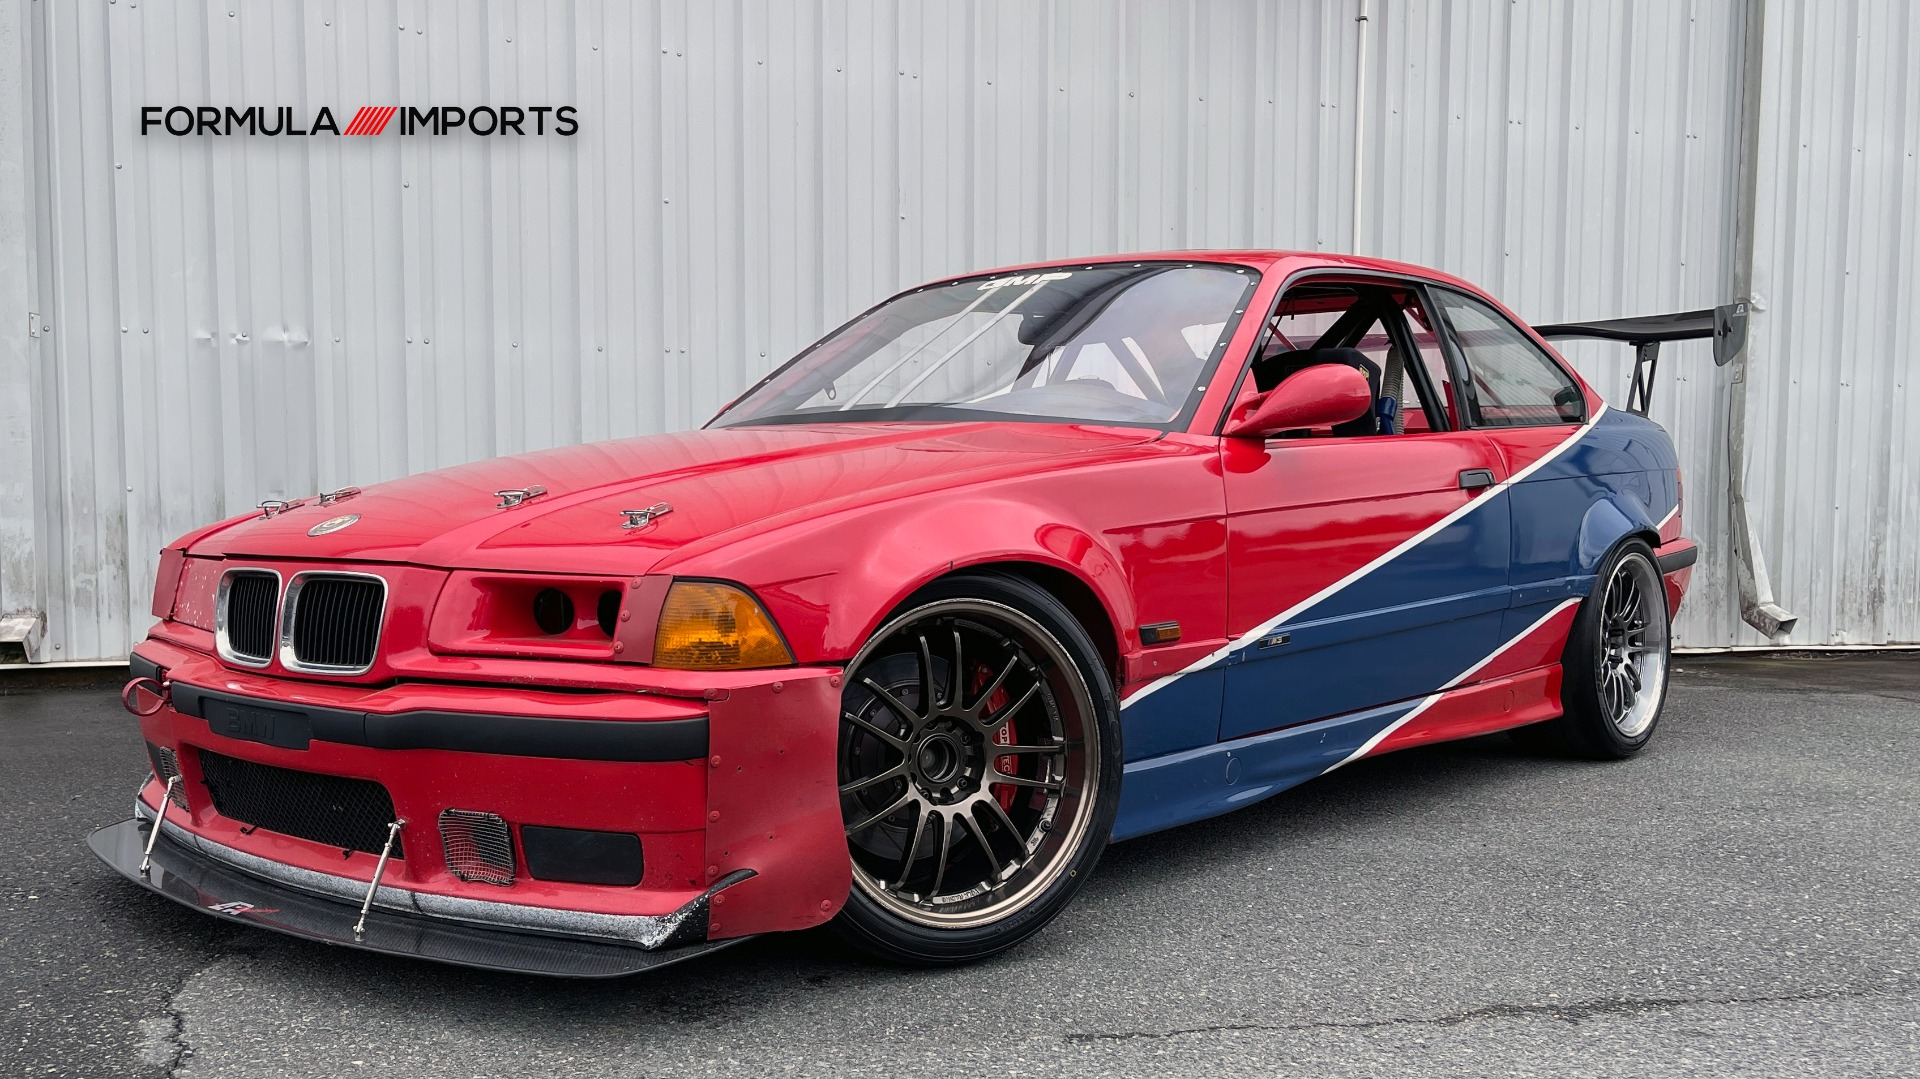 Used 1996 BMW 3-SERIES M3 TRACK CAR / 5-SPD / MANUAL / FULL CAGE / CARBON FIBER WING for sale $47,995 at Formula Imports in Charlotte NC 28227 20